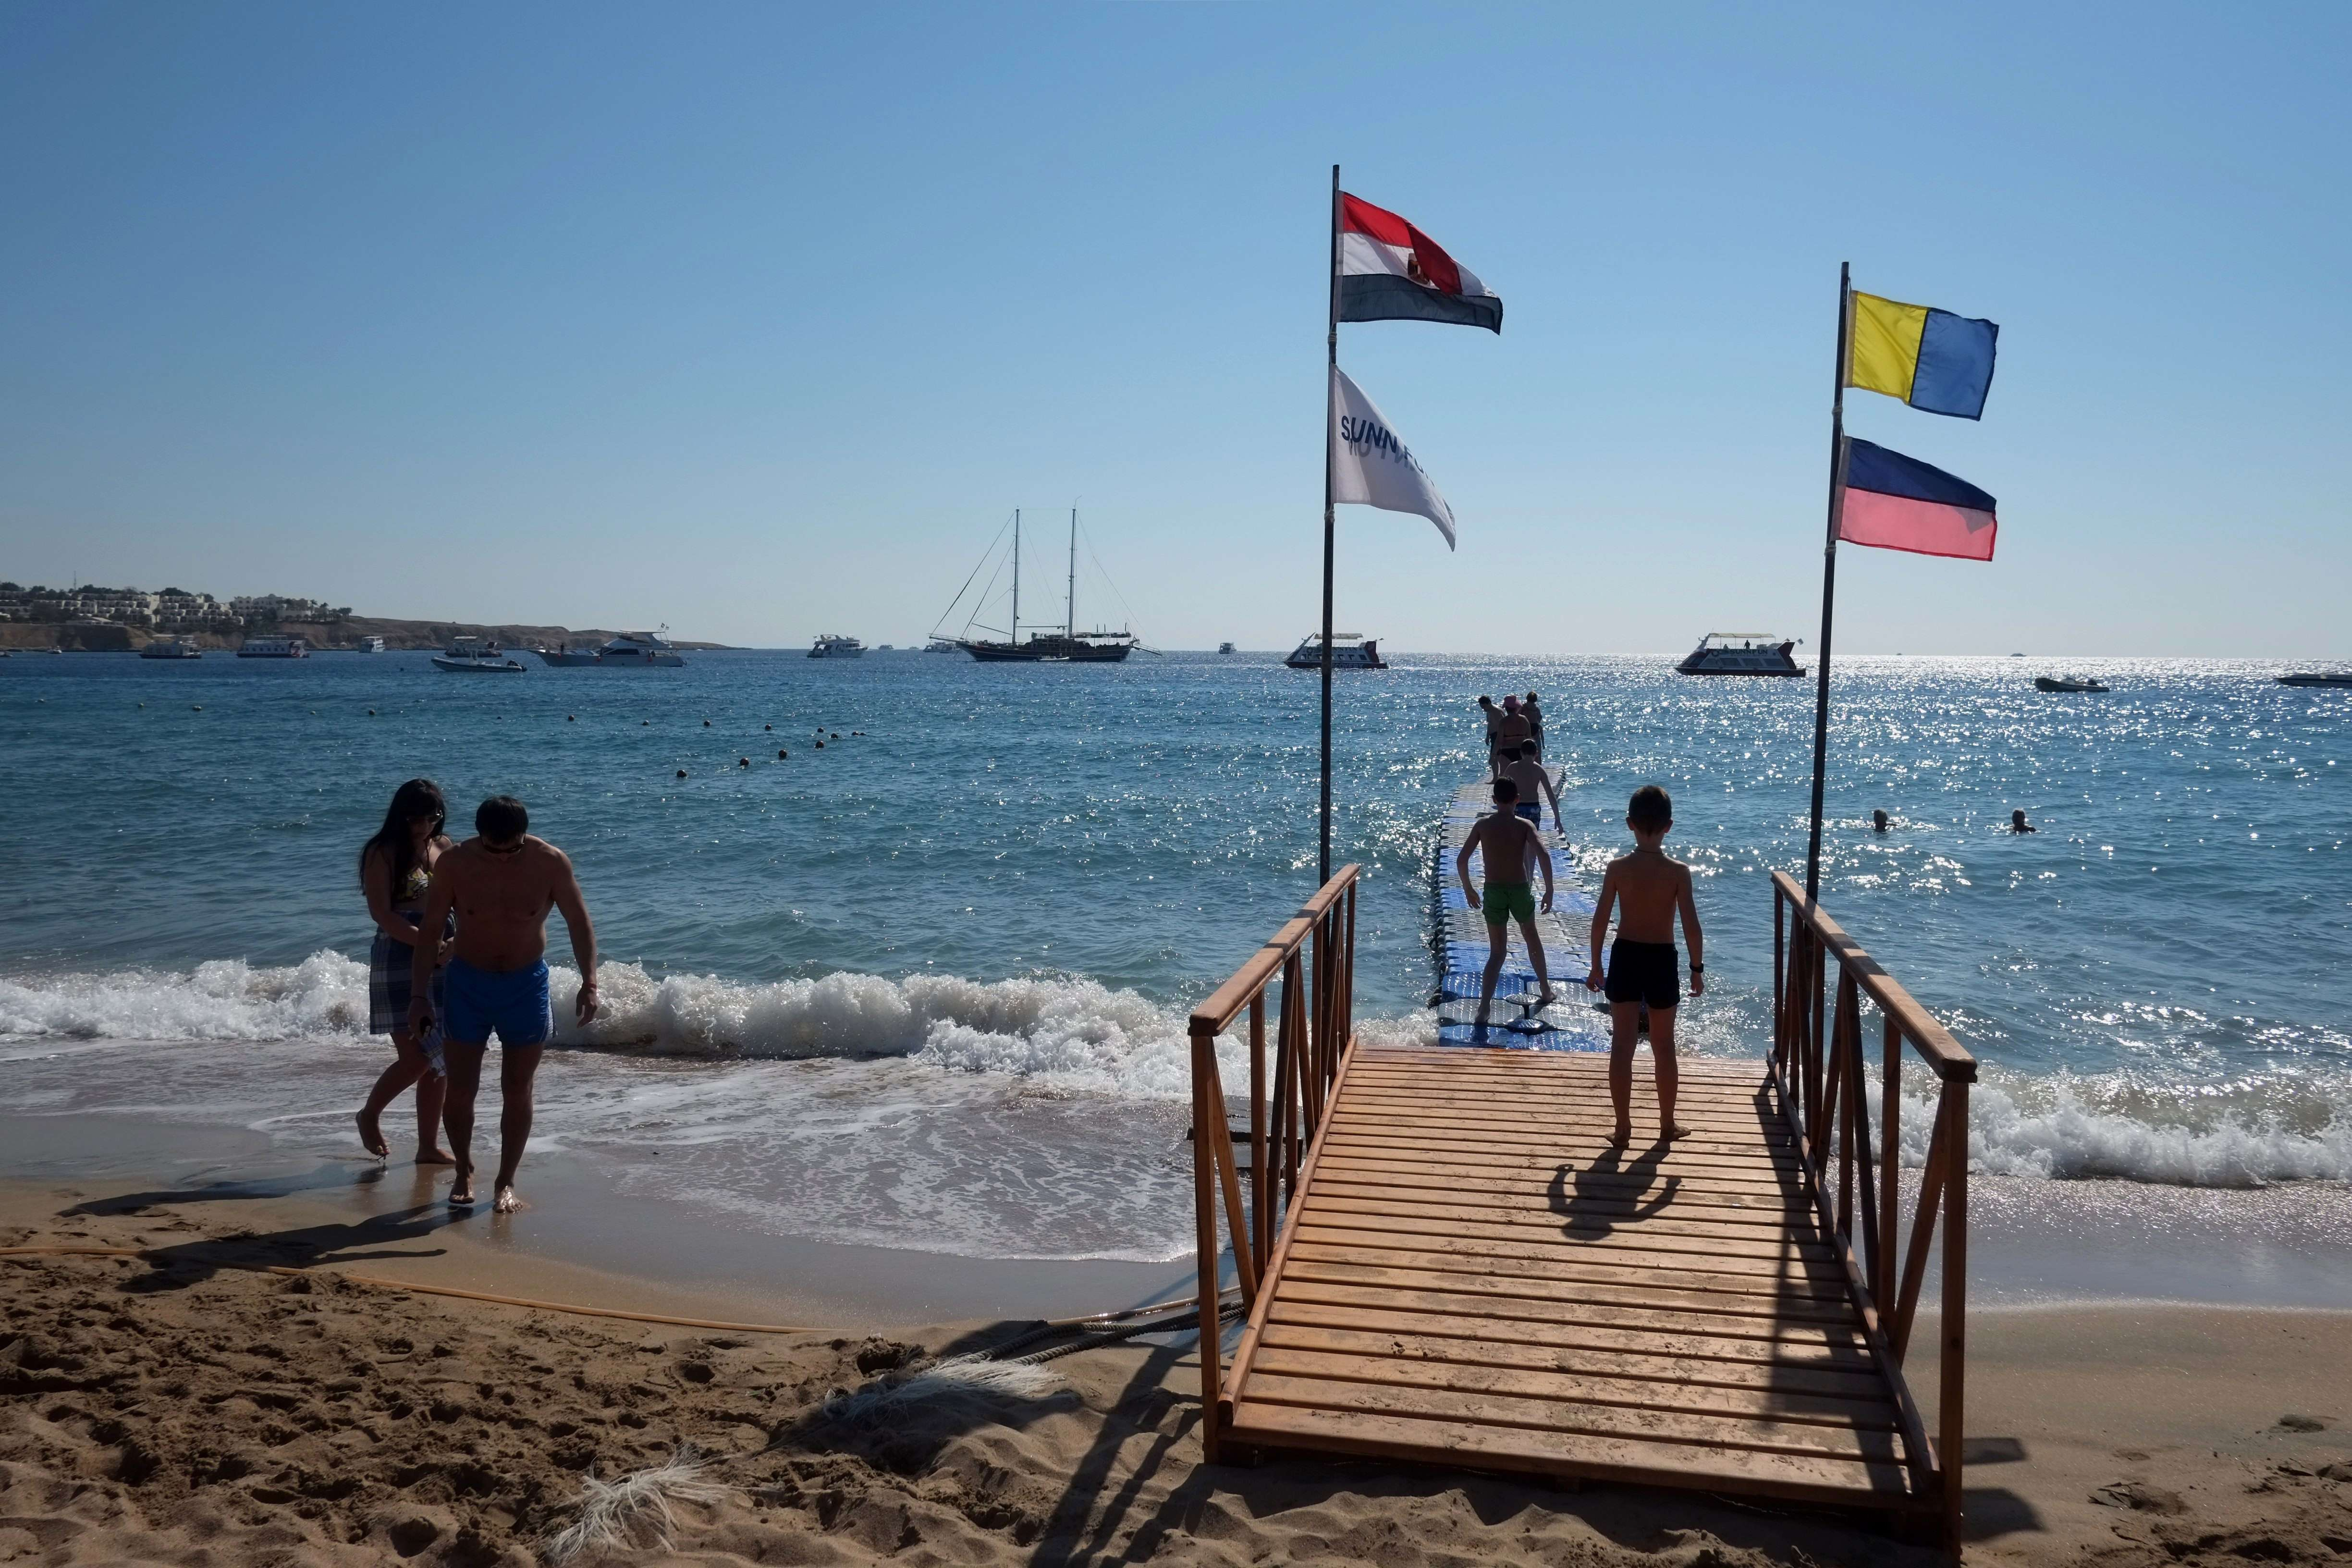 Tourists enjoy the beach in the Egyptian Red Sea resort of Sharm el-Sheikh on February 19, 2014. The decline in tourism since the fall of Egyptian president Hosni Mubarak has hobbled Egypt's economy .  (AFP PHOTO / KHALED DESOUKI)